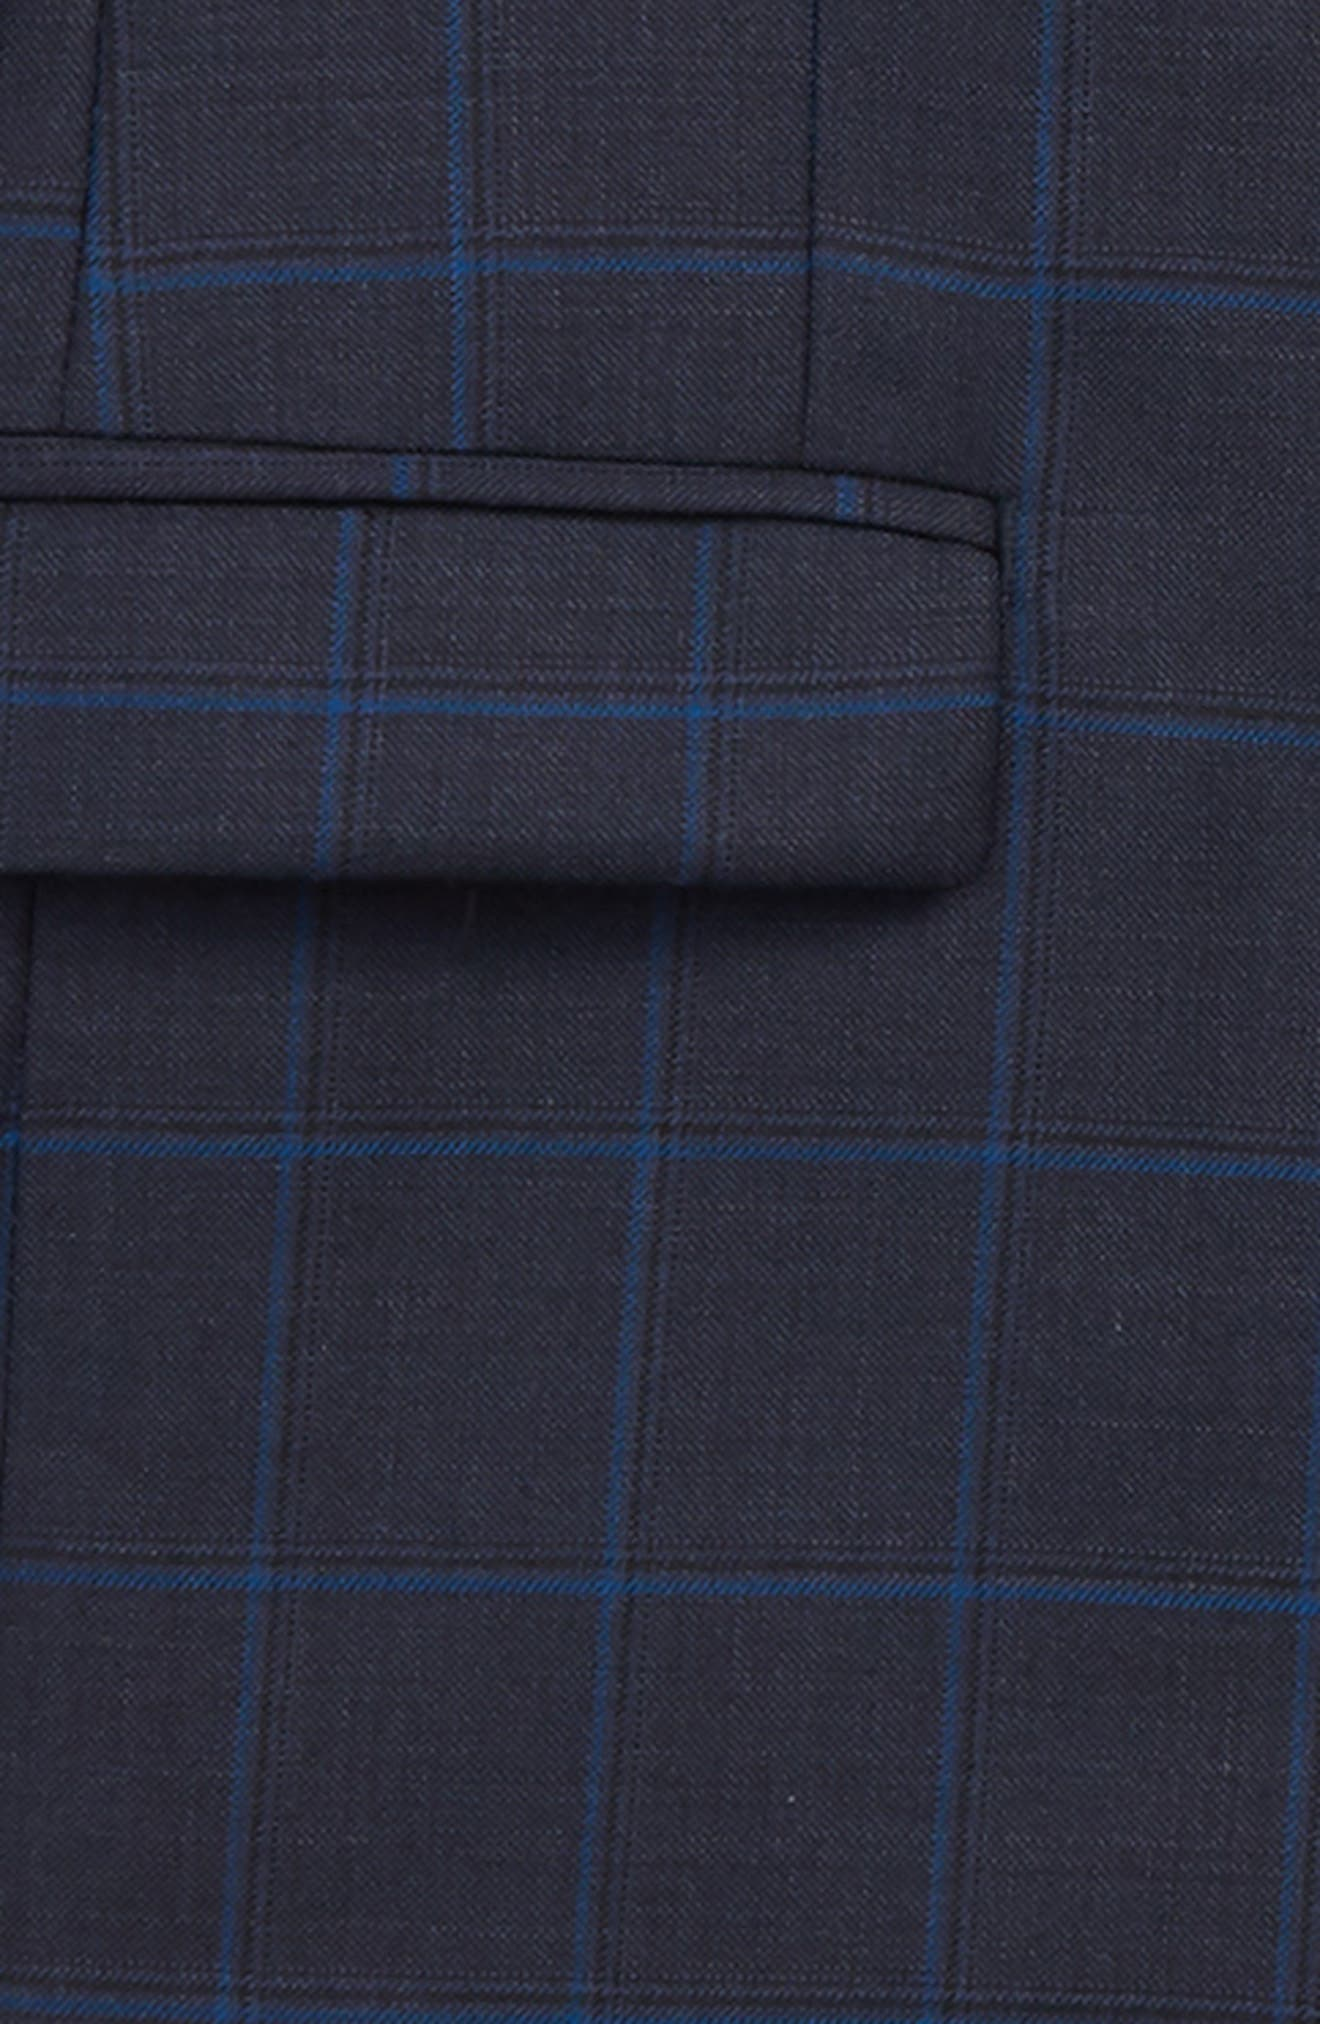 Two-Piece Plaid Wool Suit,                             Alternate thumbnail 2, color,                             BLUE